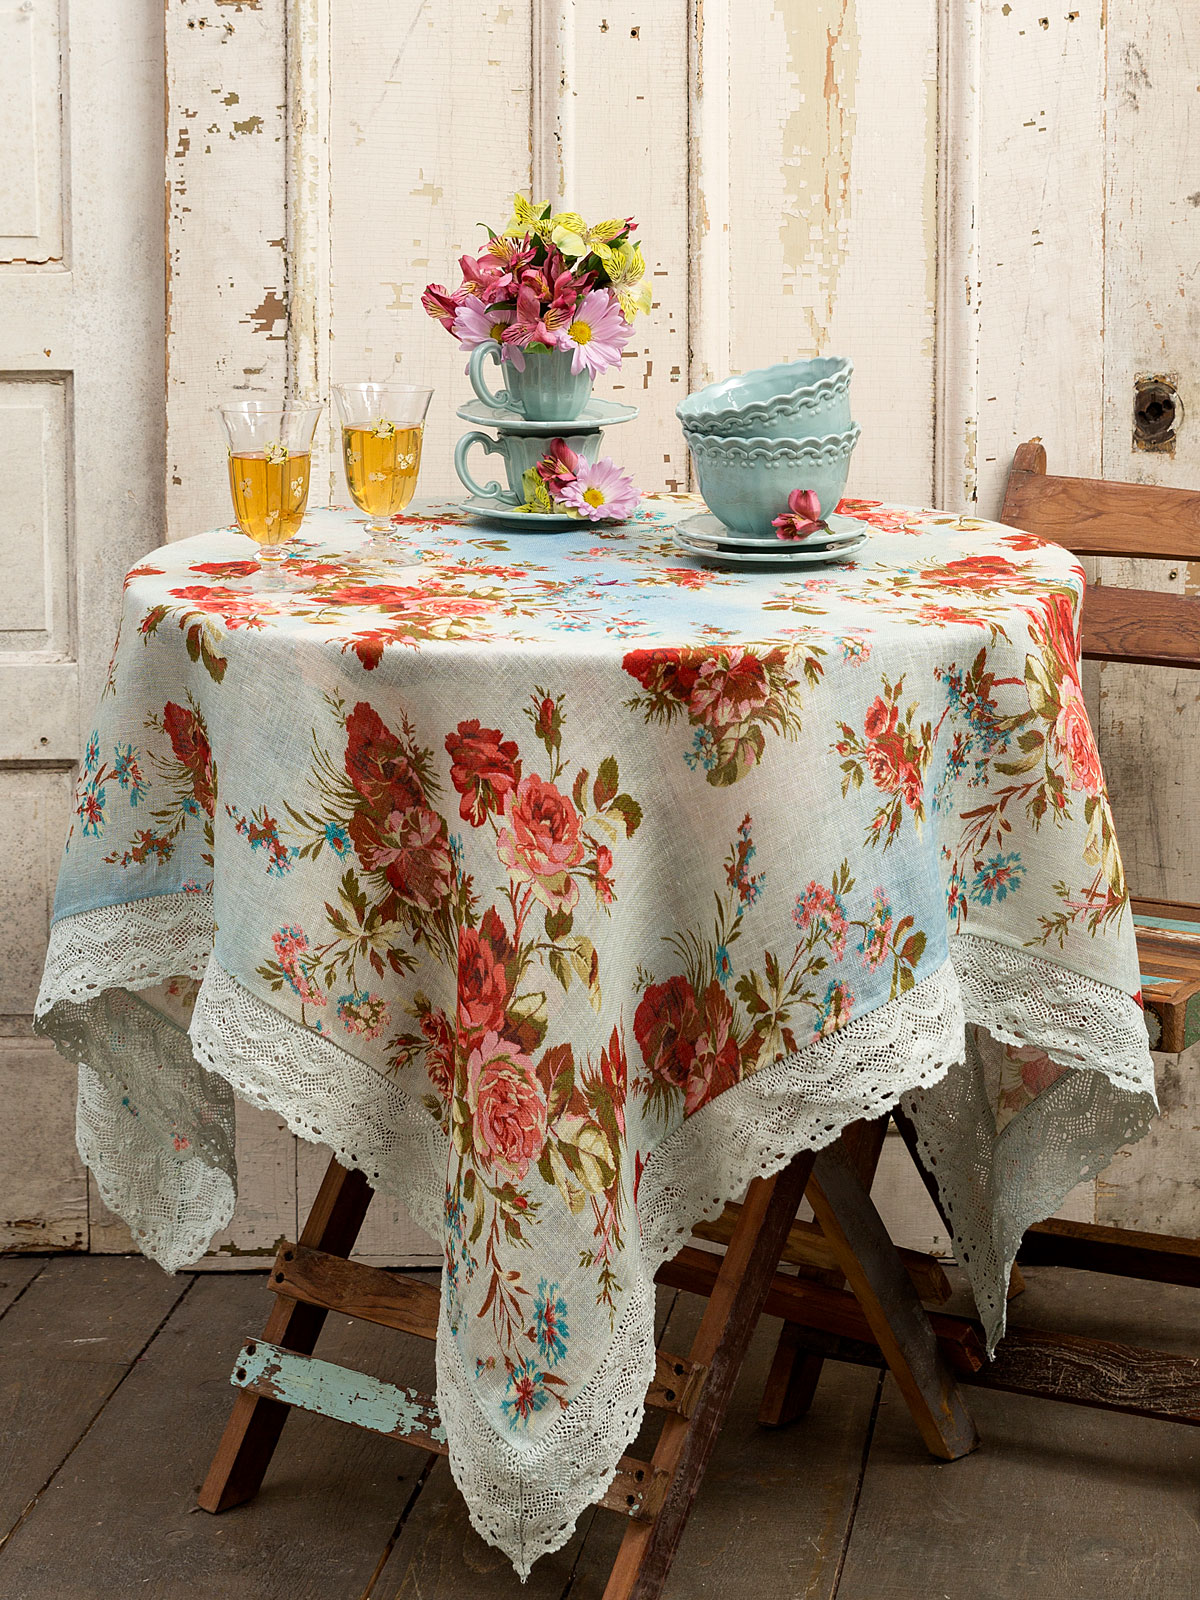 heirloom rose linen tablecloth linens kitchen tablecloths beautiful designs by april cornell. Black Bedroom Furniture Sets. Home Design Ideas